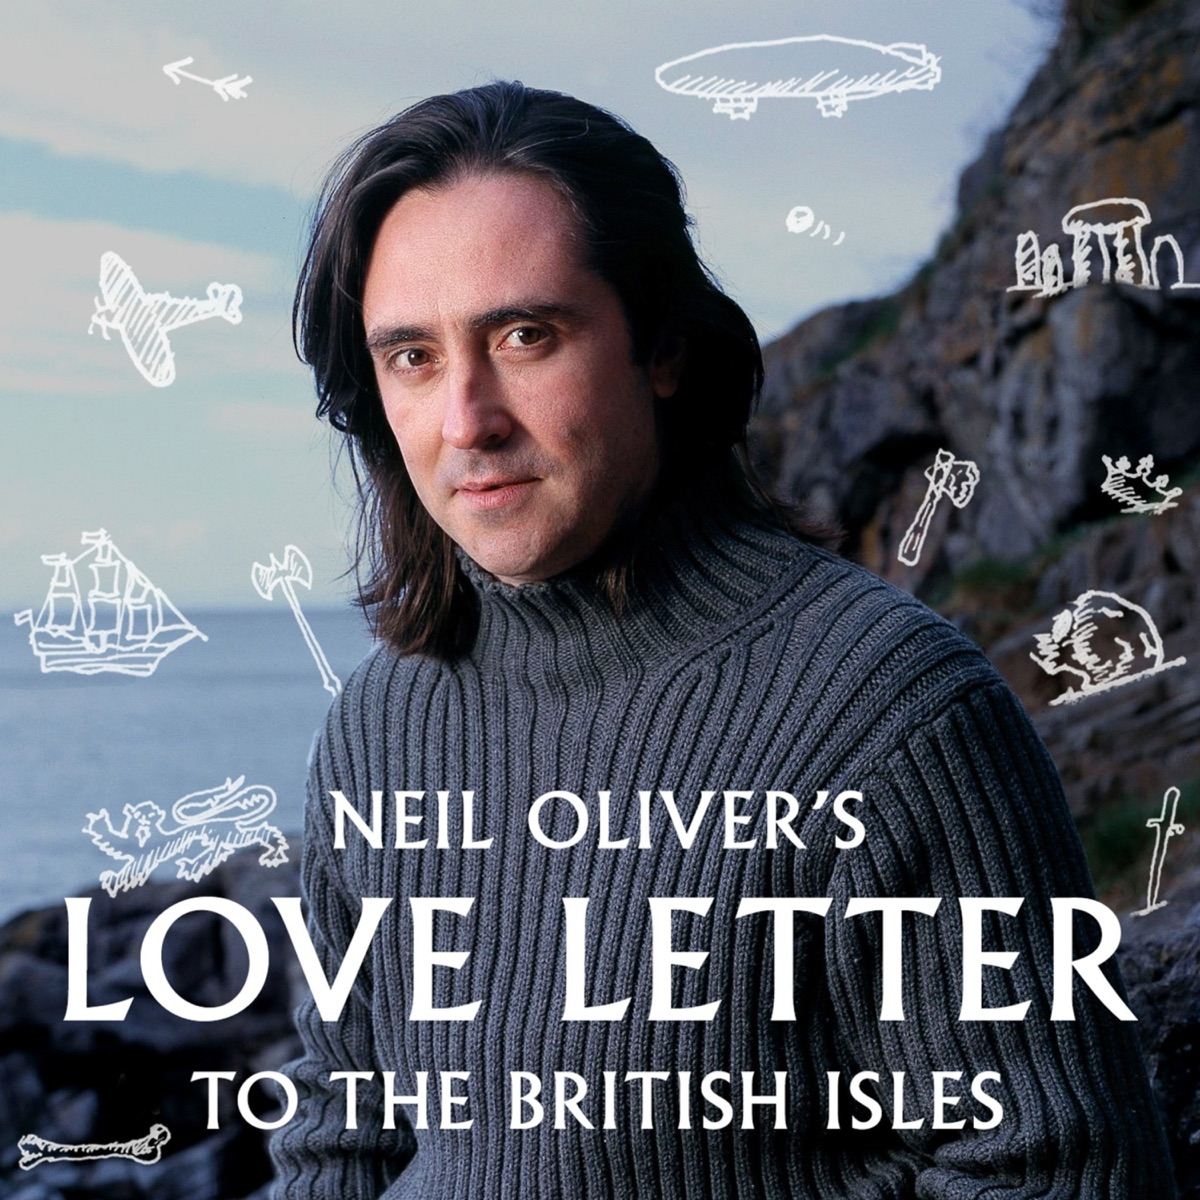 Neil Oliver's Love Letter to the British Isles